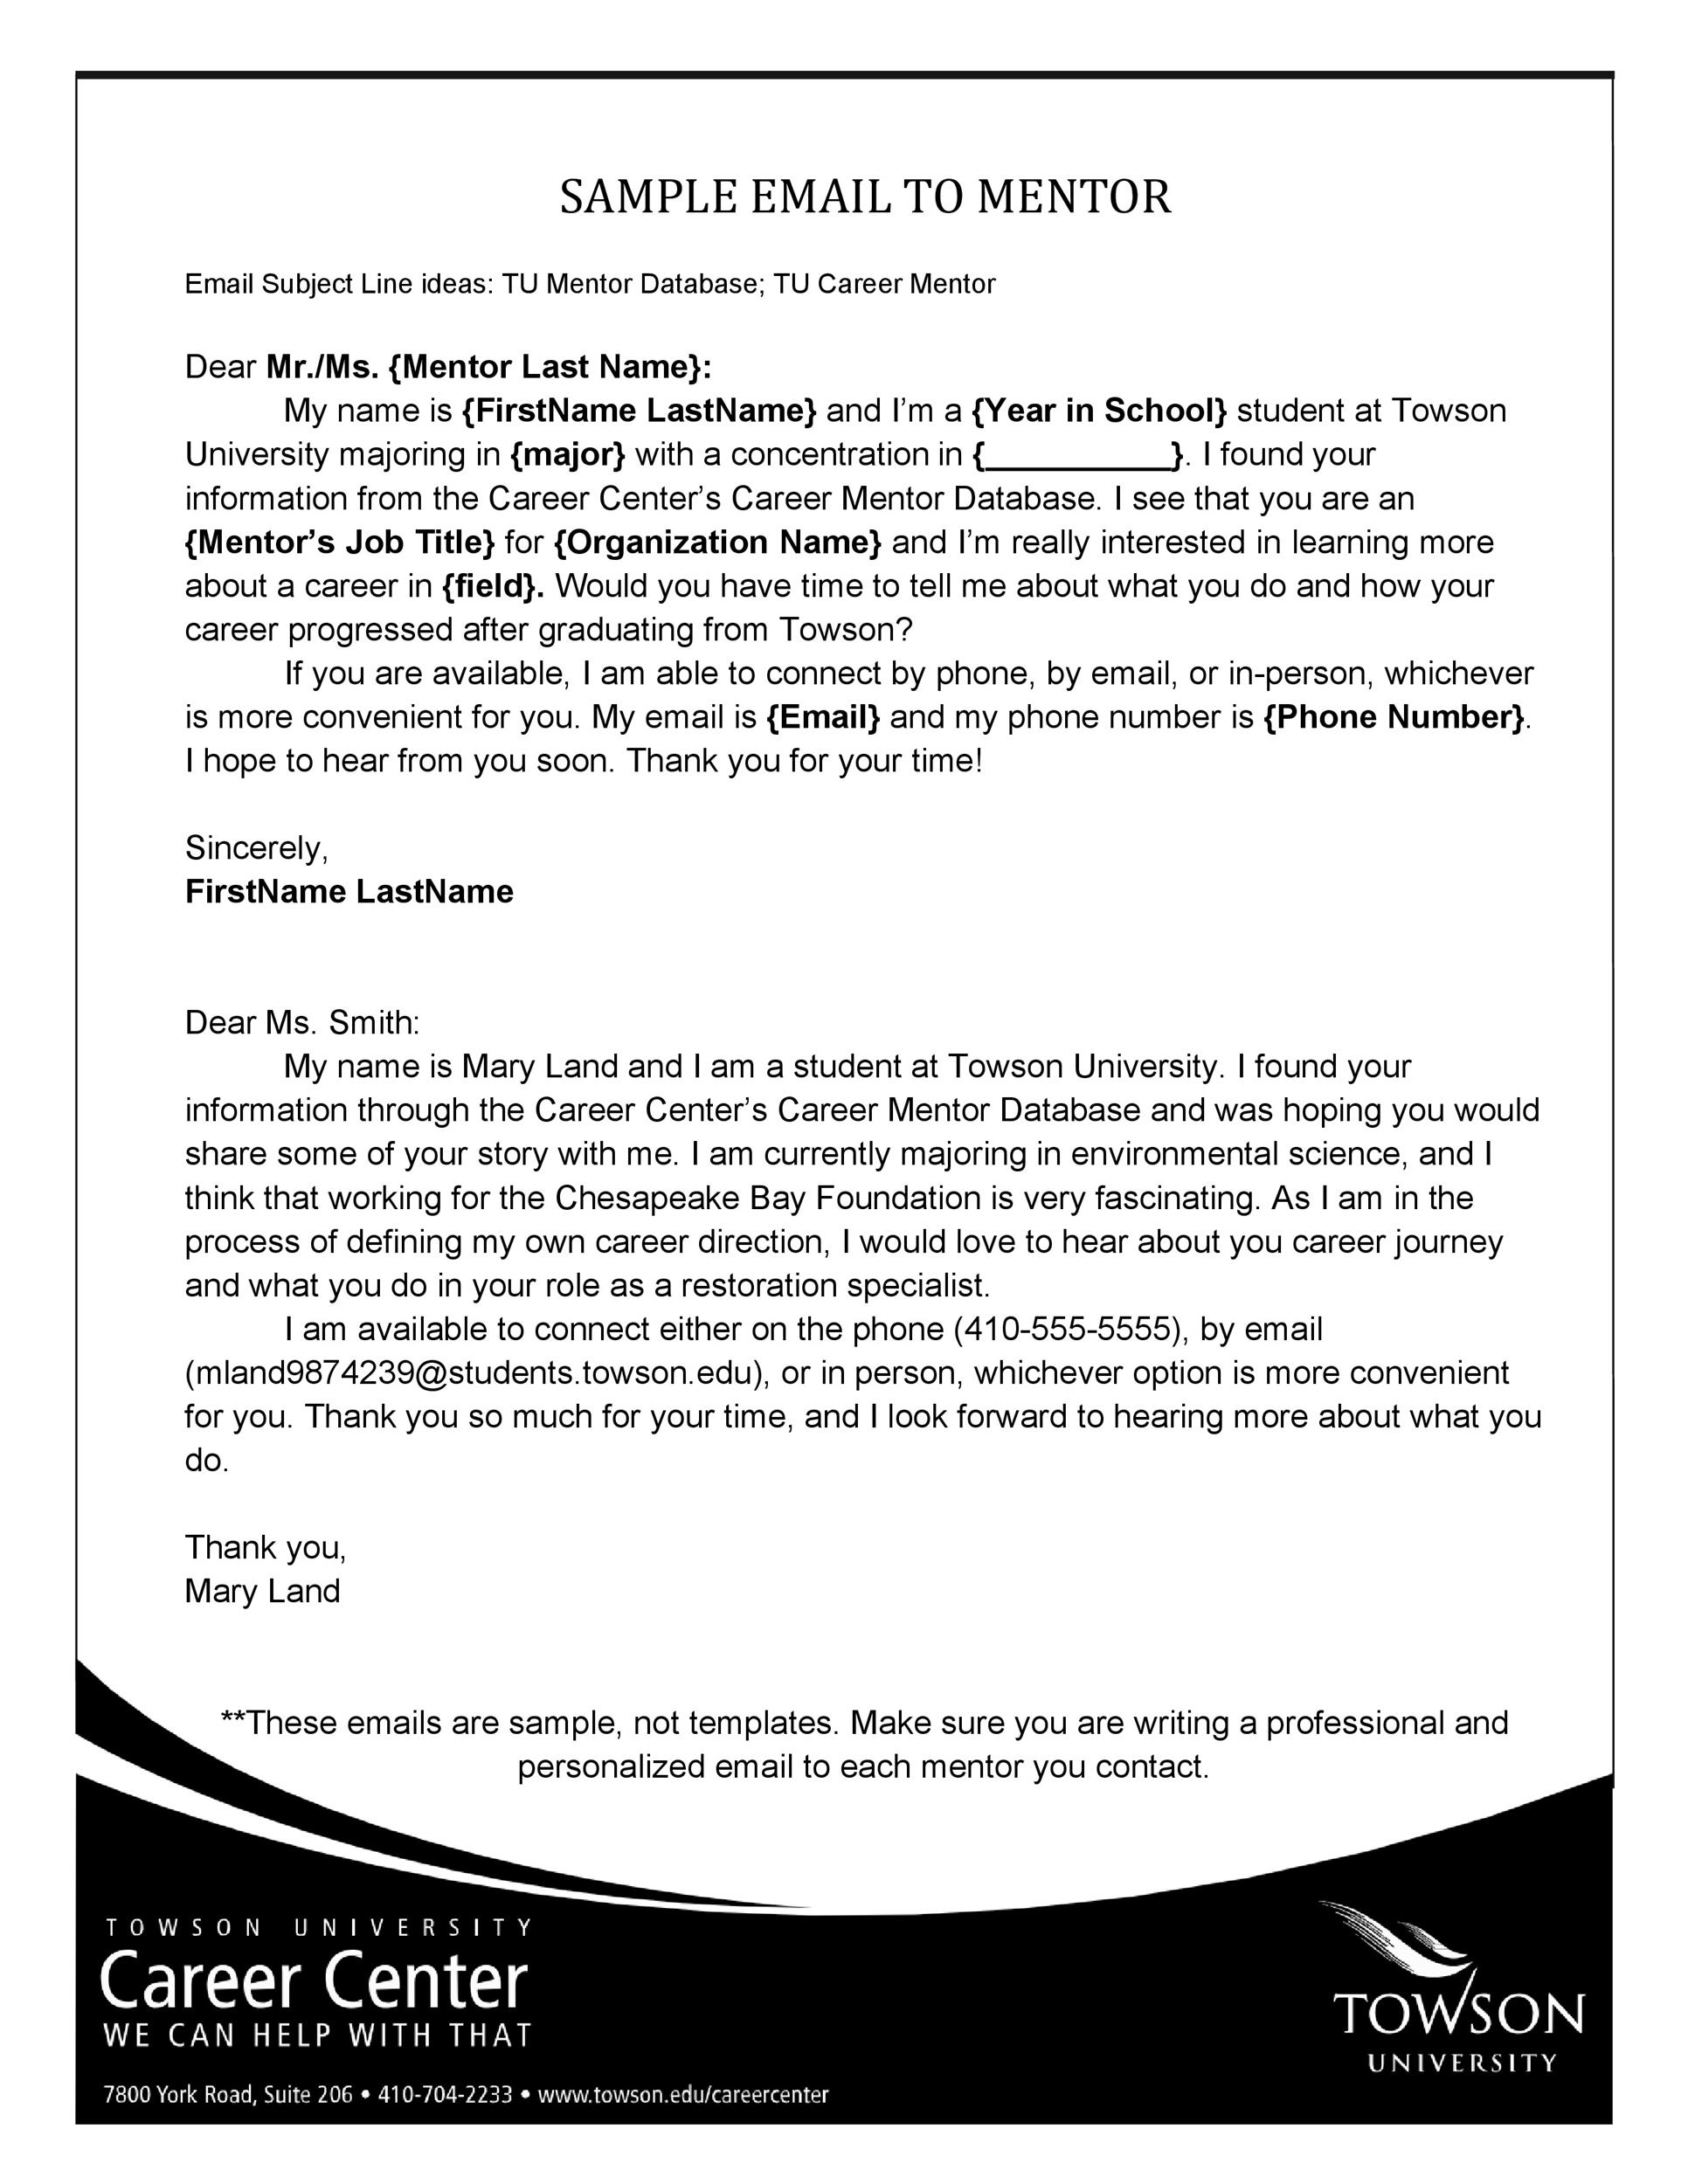 email writing template professional - Boat.jeremyeaton.co